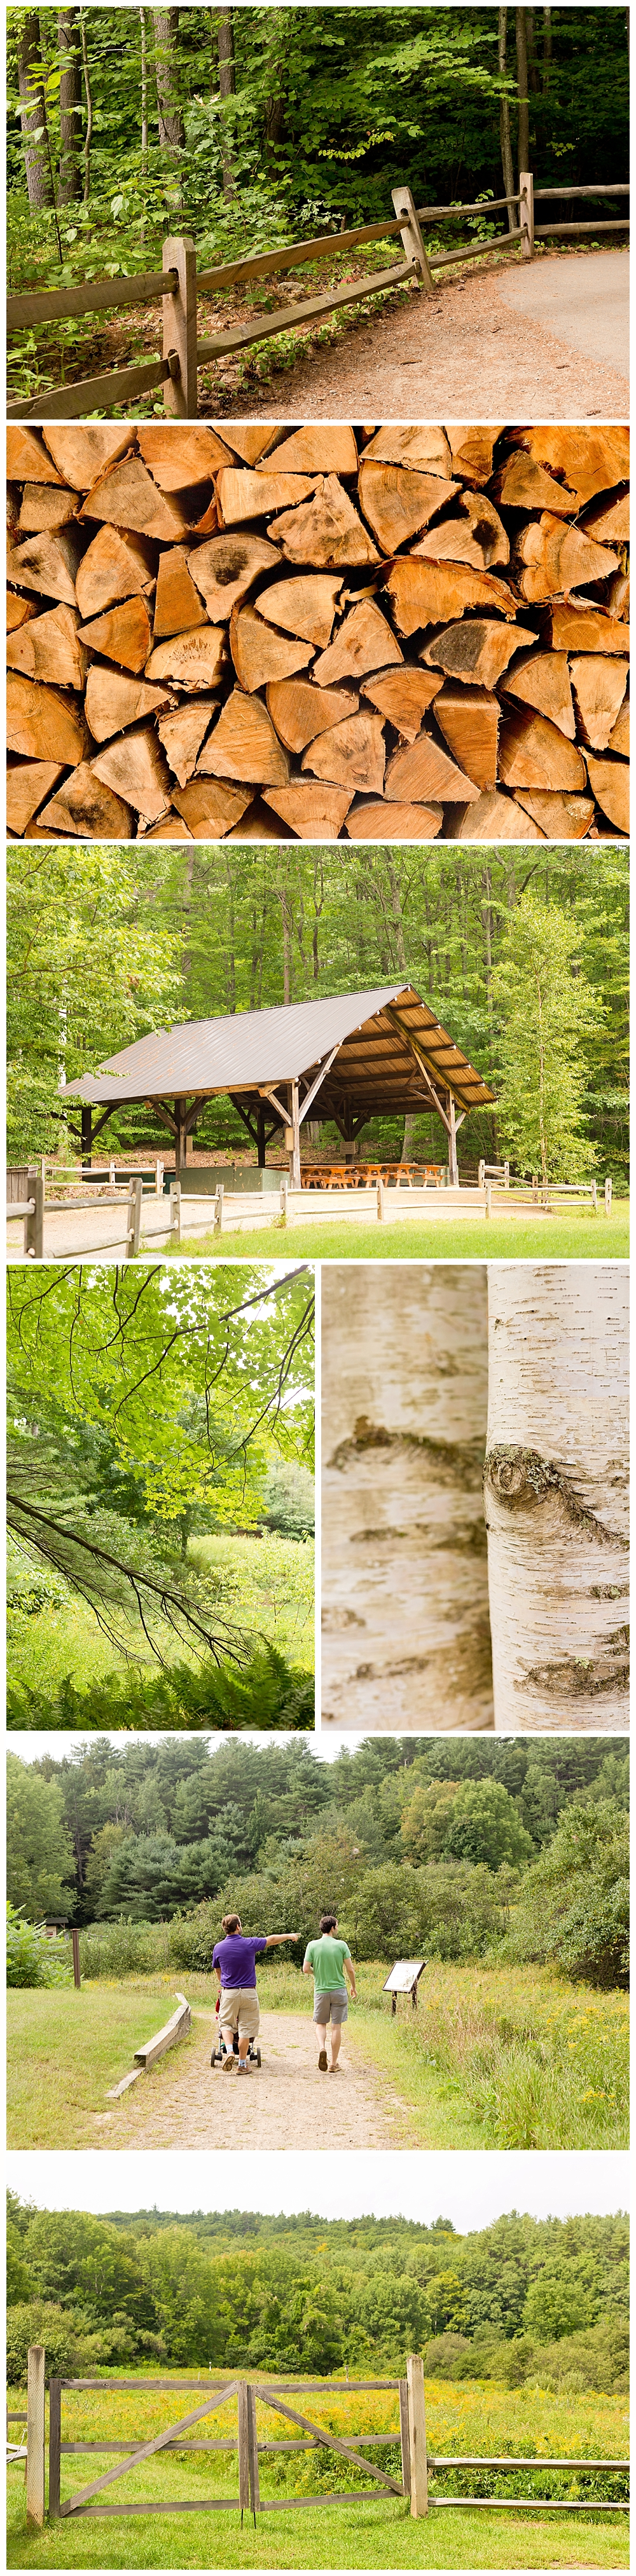 beautiful outdoor scenery at Squam Lakes Natural Science Center